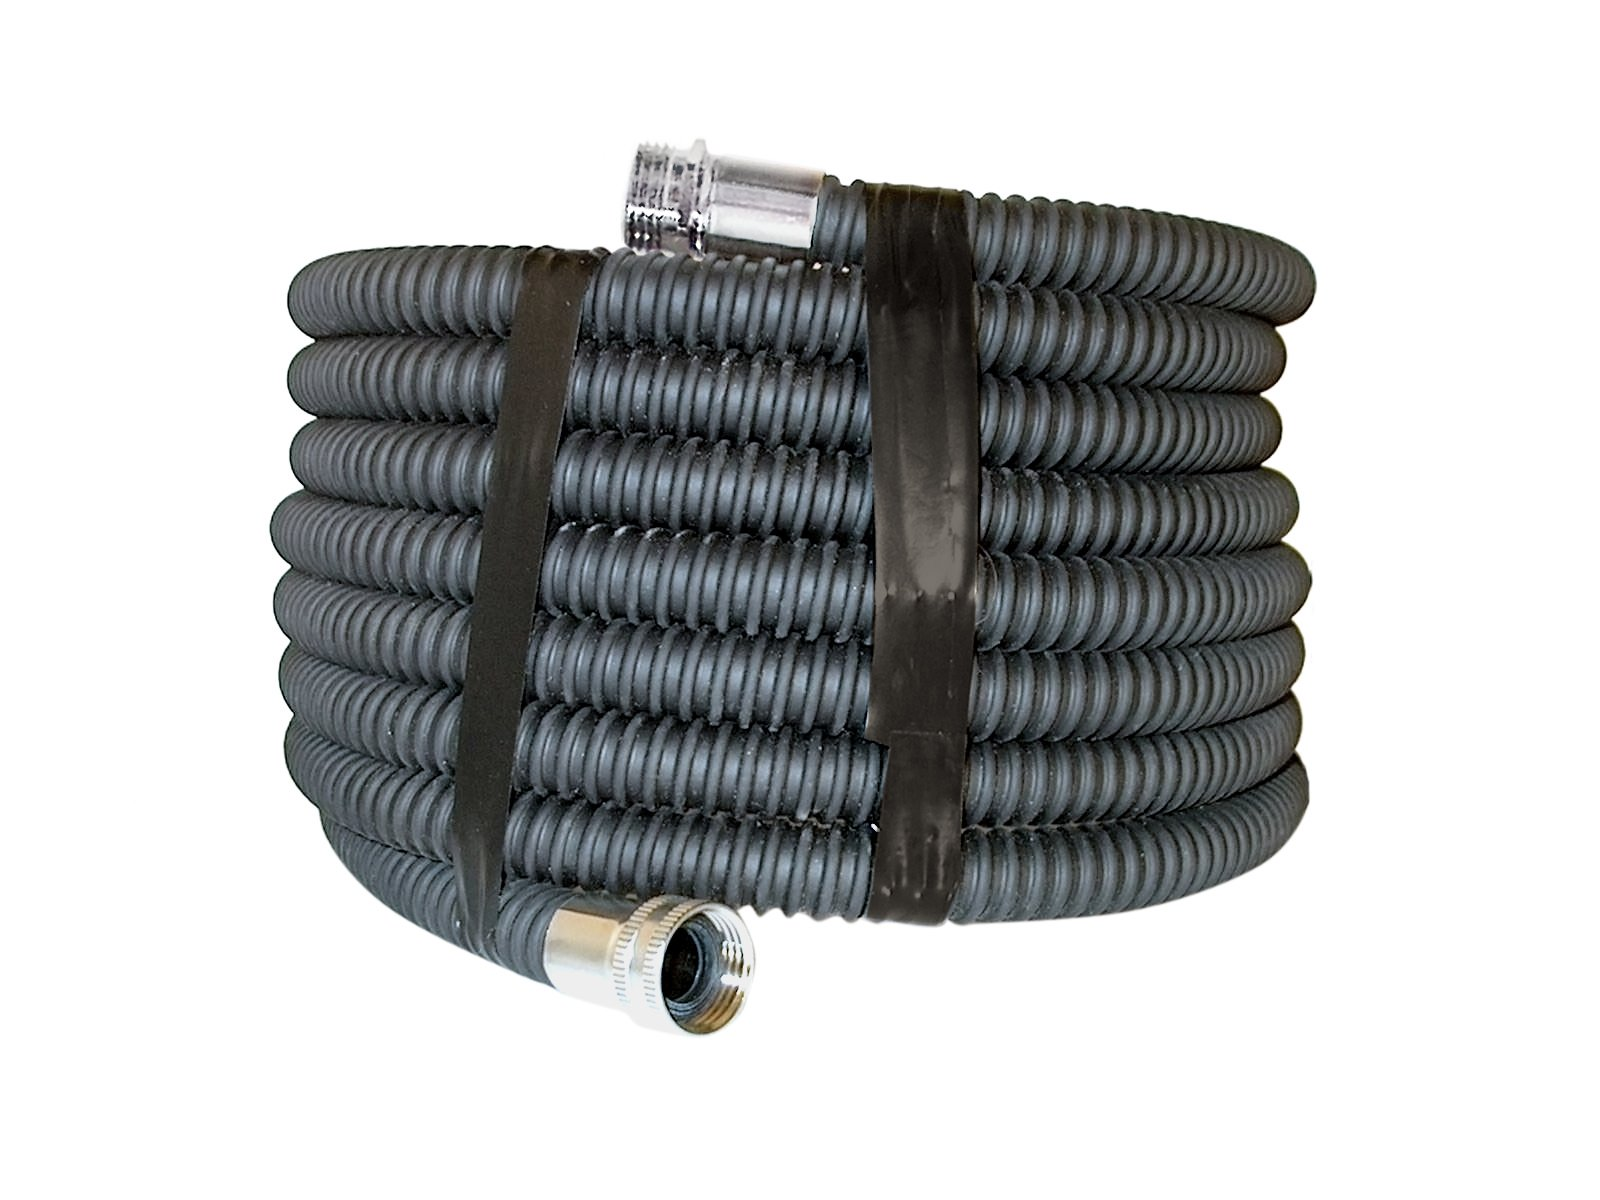 100' air hose for use with supplied air system